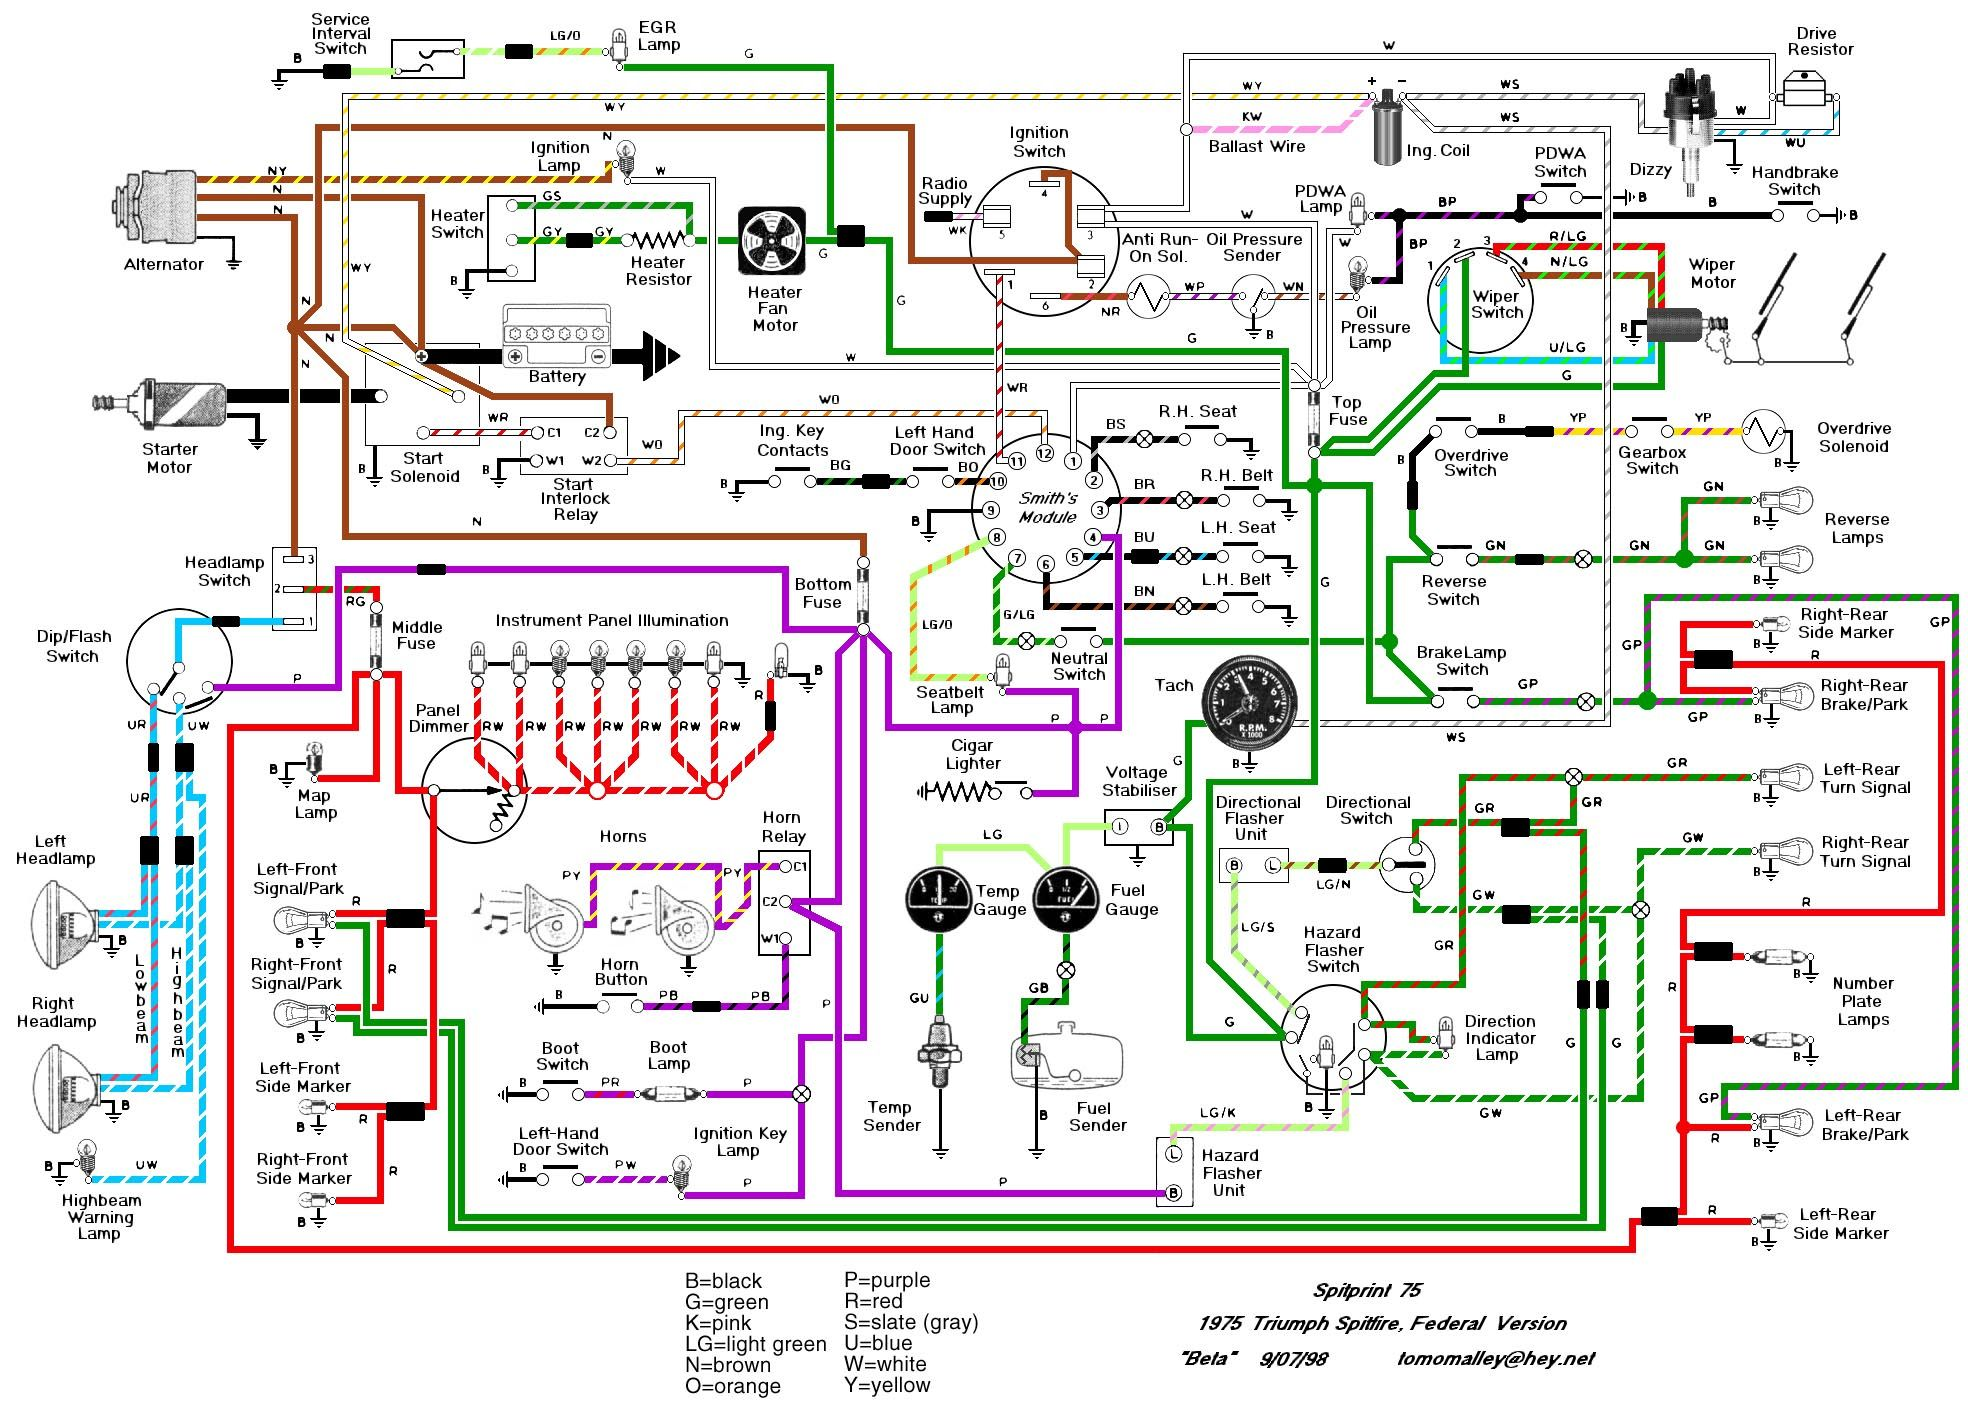 be29e78a9b223a9820997f058b4332e6 car wiring diagrams house wiring diagrams \u2022 wiring diagram  at soozxer.org